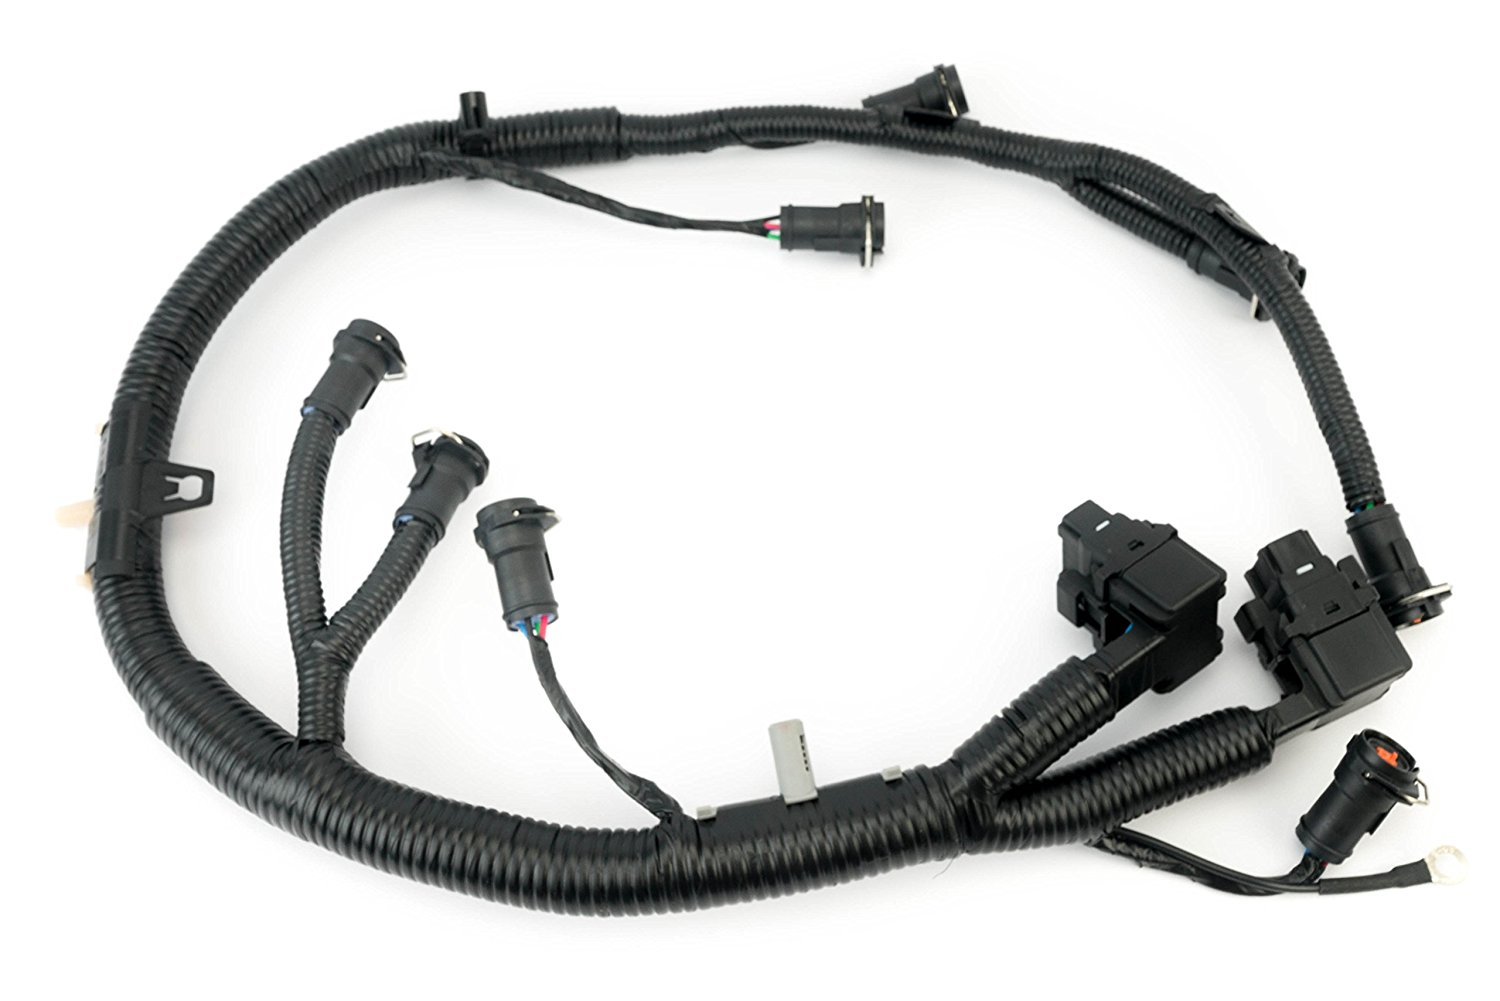 FICM Engine Fuel Injector Complete Wire Harness - Replaces Part# 5C3Z9D930A Image